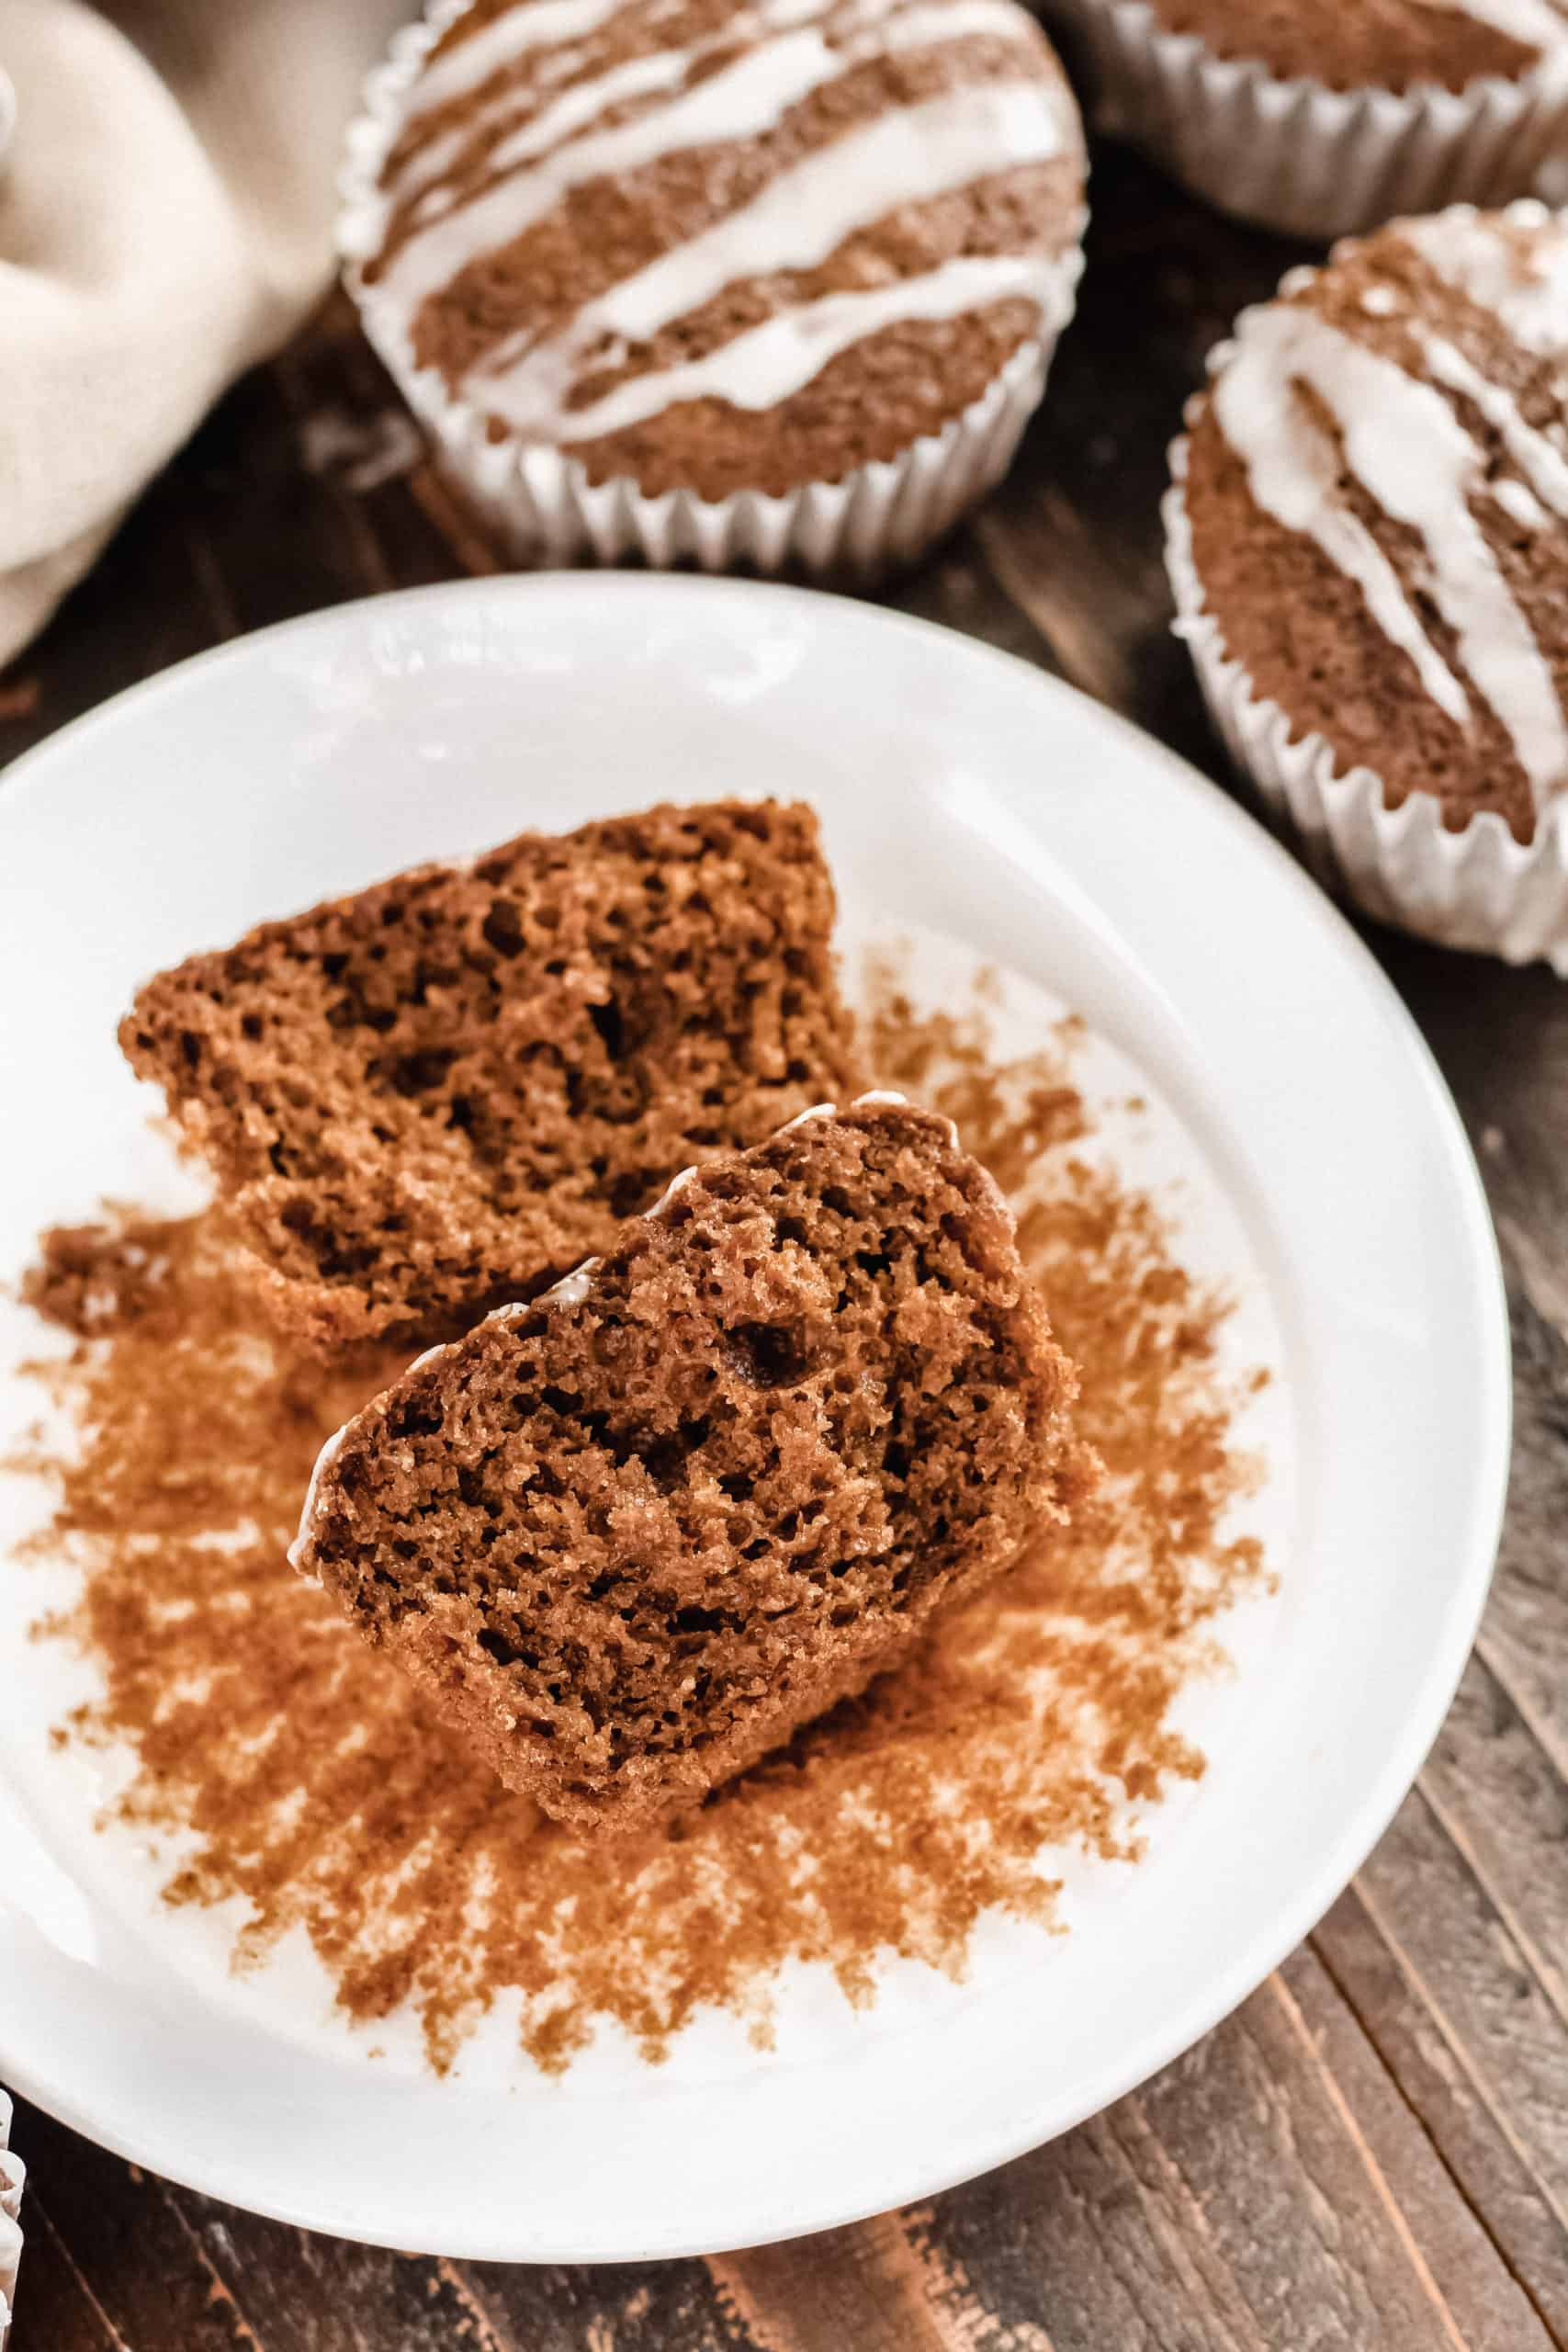 One gingerbread muffin cut in half to see the inside, on a plate